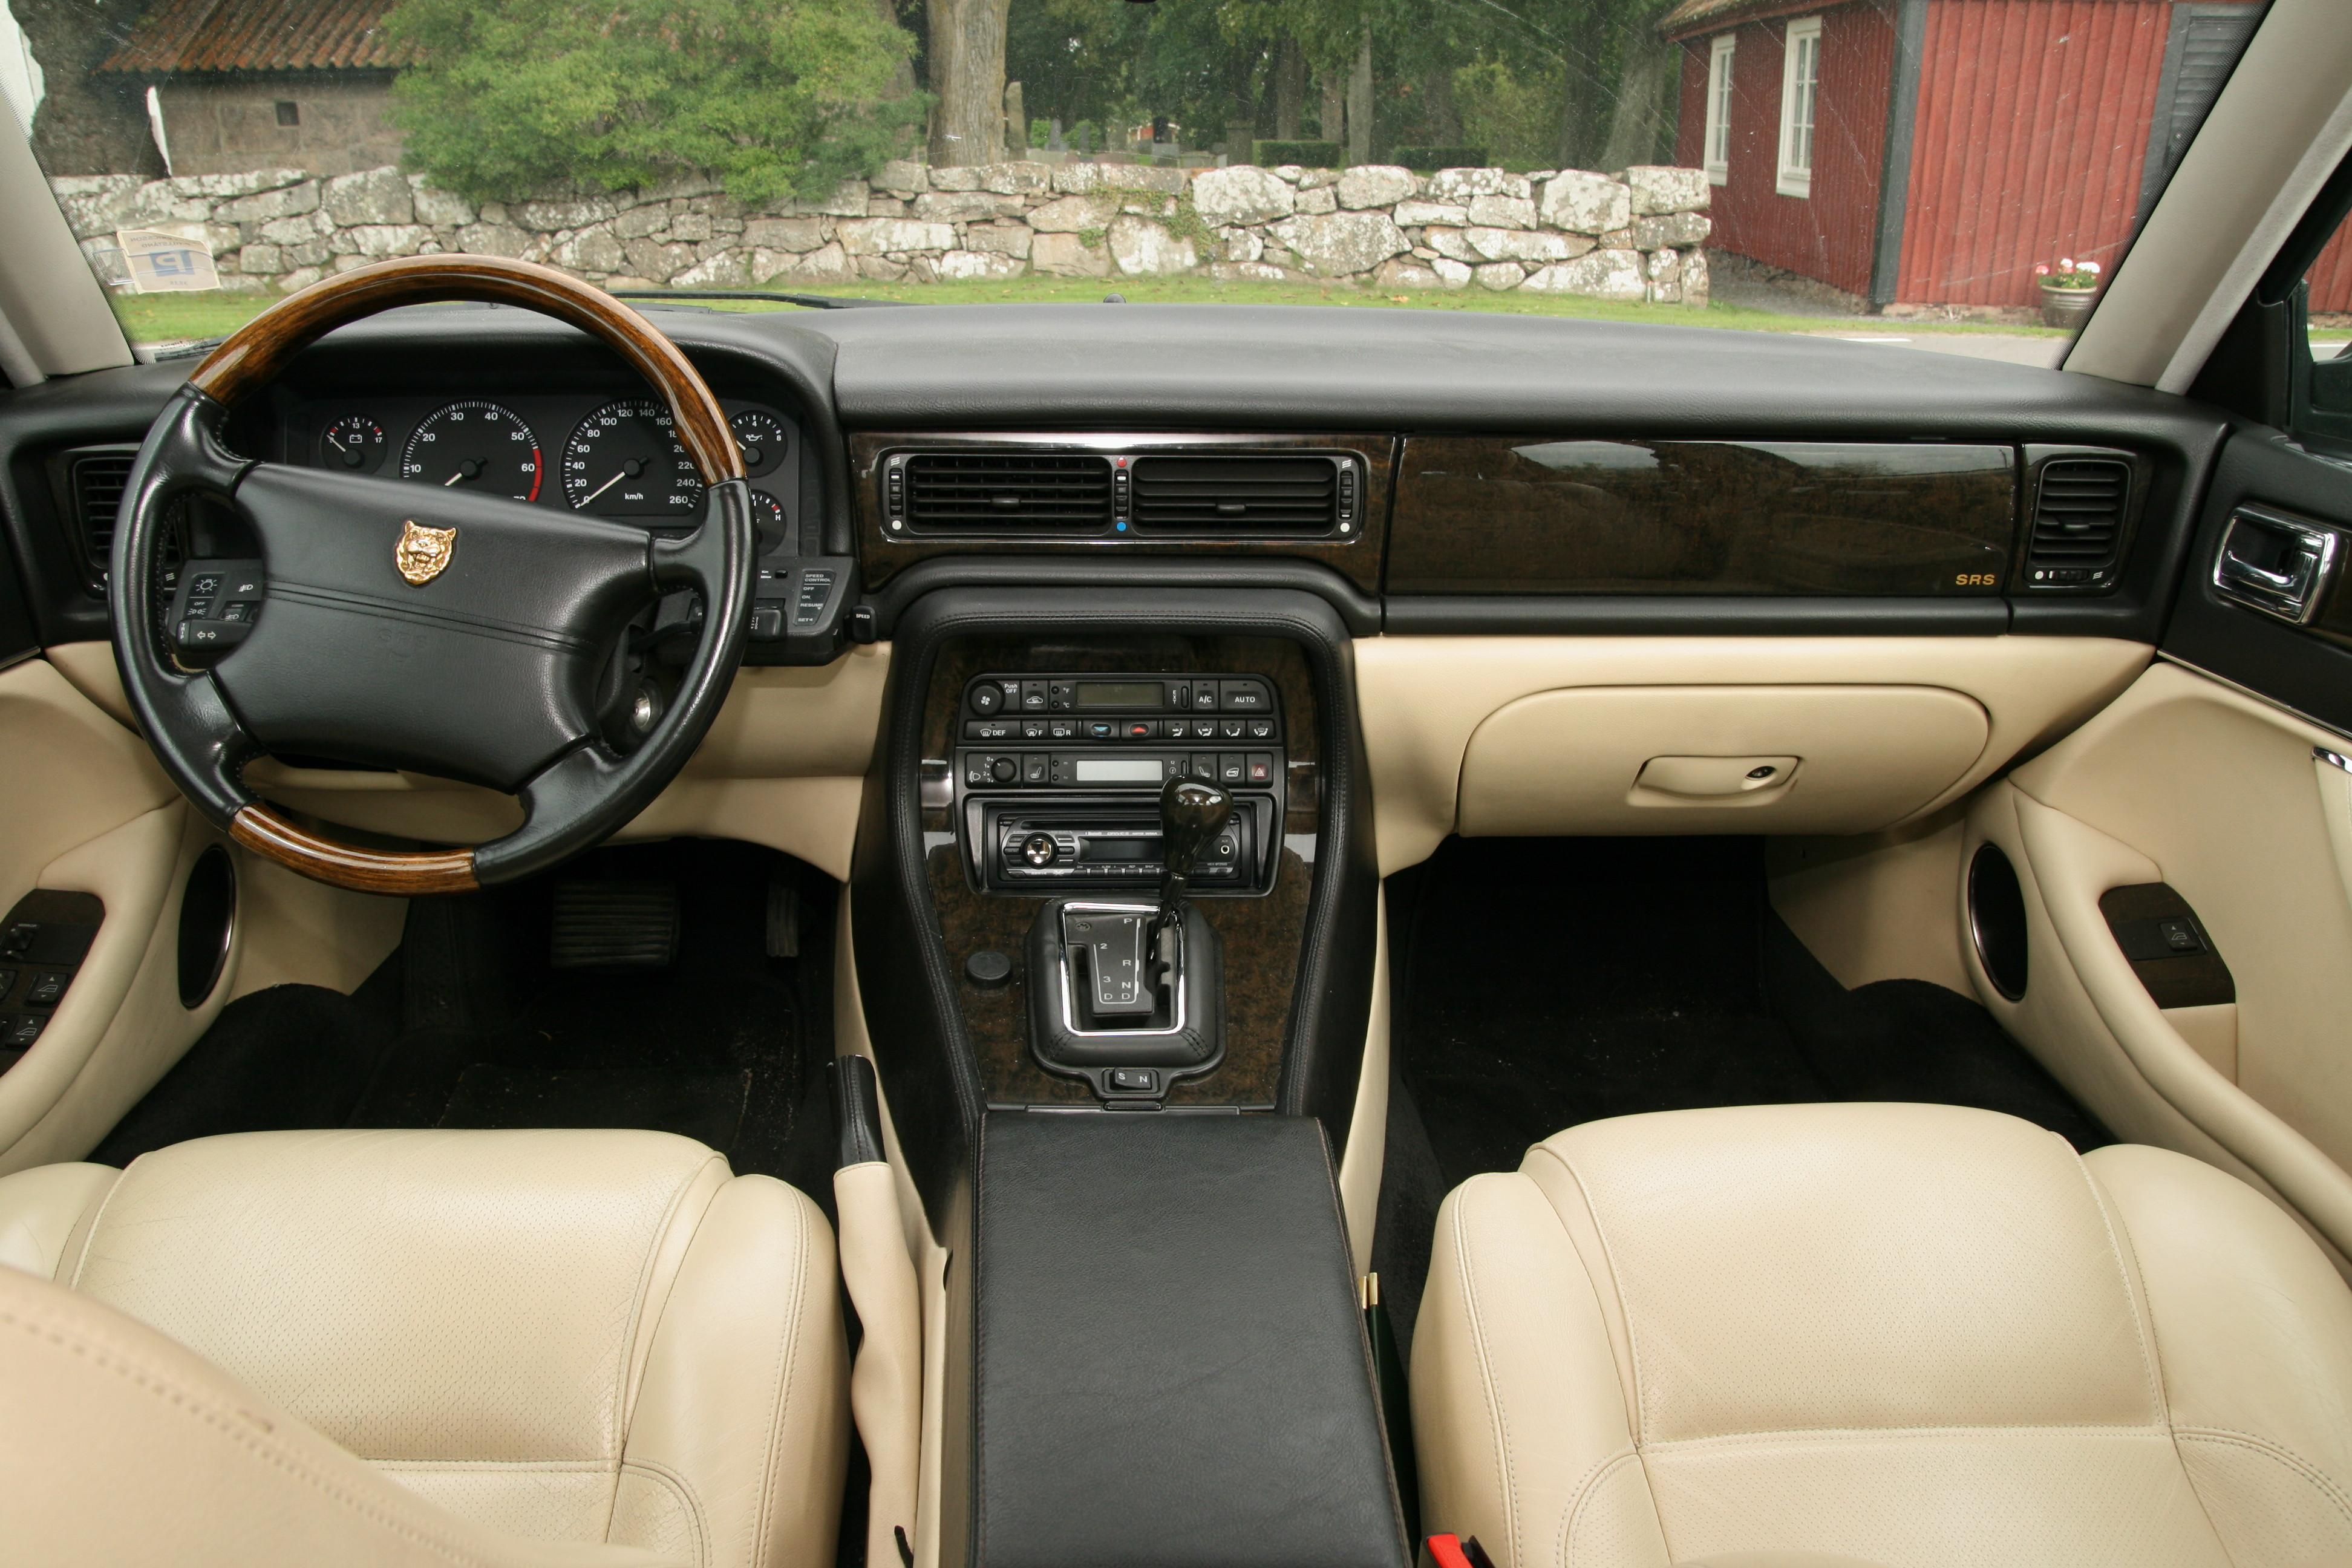 1256490 2006 Gto Wiring Harness Info Needed moreover File Jaguar X300 interior  1995  Warm charcoal  26 Cream also C4 Urs Servotronic Control Module Info 2826857 additionally 459163 Has Anyone Ever Done Know About likewise Thermostat Location 2003 Audi. on 2000 jaguar xjr wiring diagram